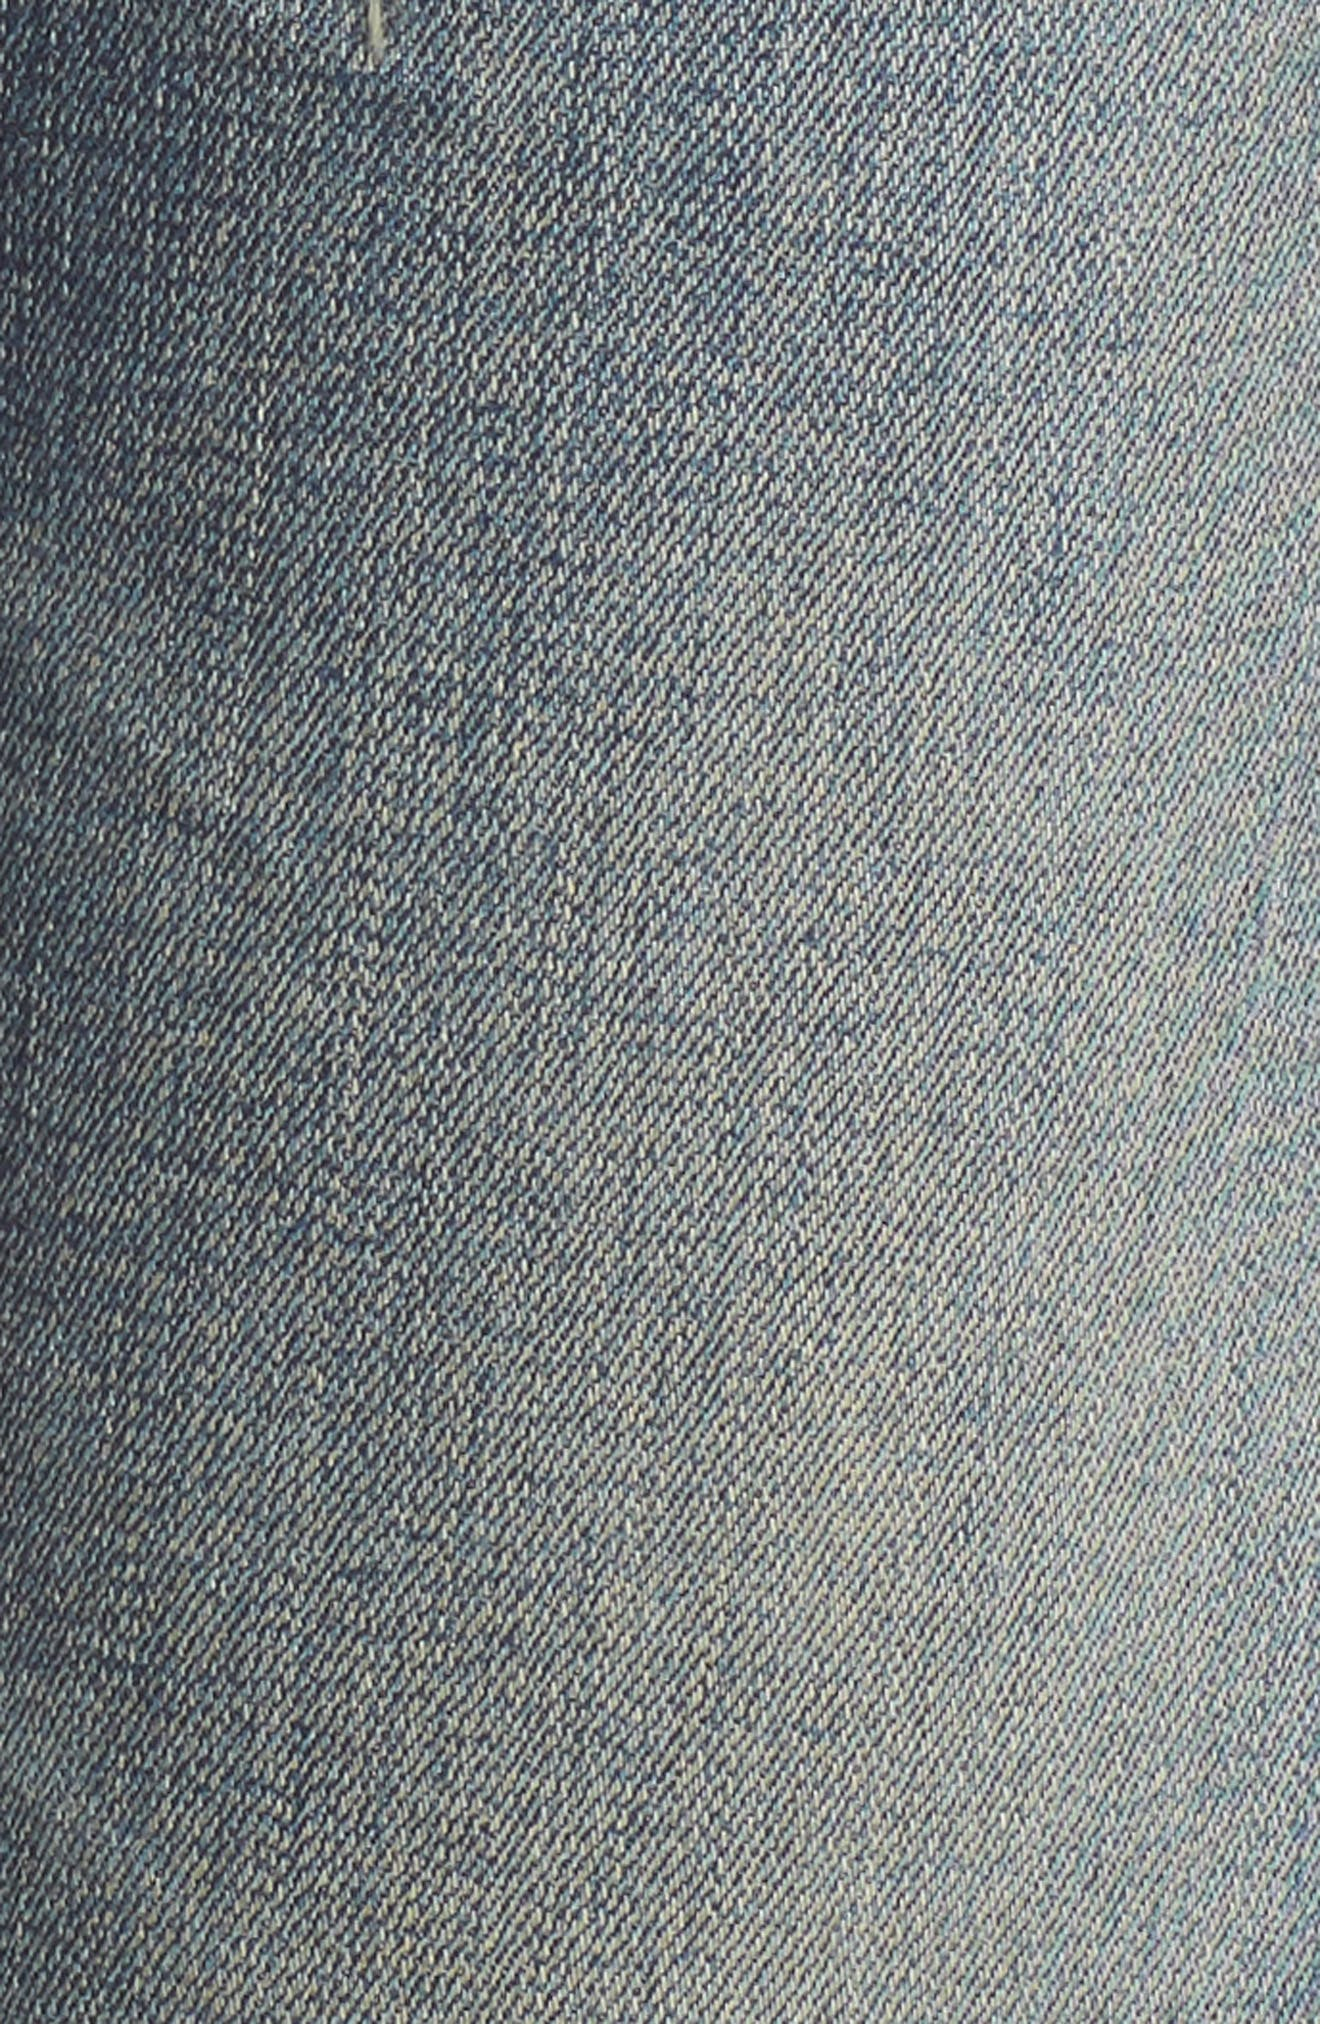 Agnes Long Jeans,                             Alternate thumbnail 5, color,                             Straight Up